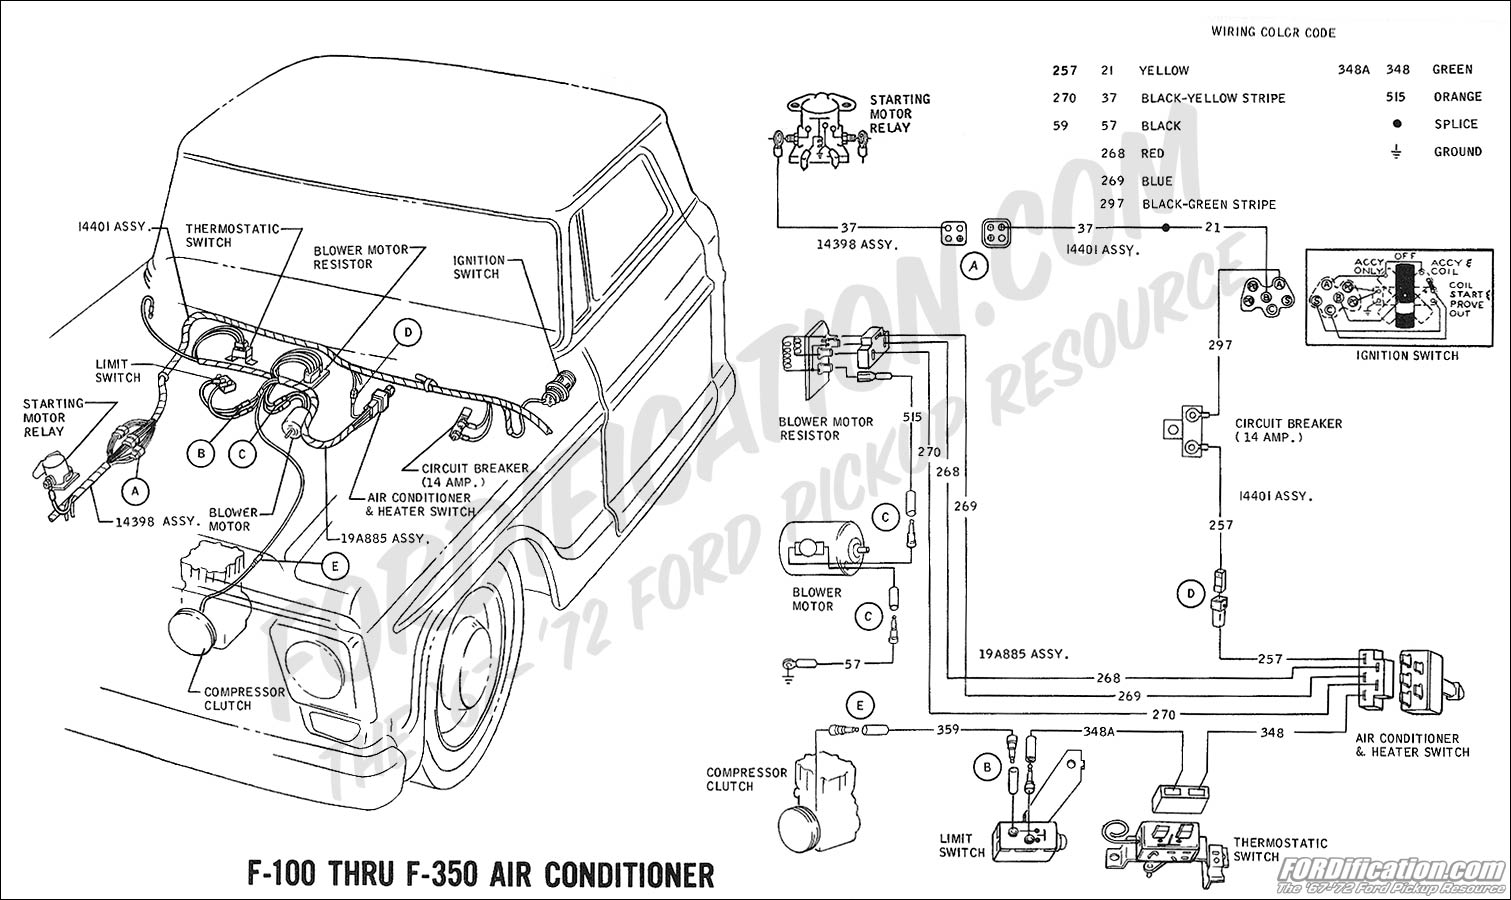 210276458 Mercedes Ml320 Ml350 Ml500 Ml550 2006 2010 Parts together with 4l8lh Ford Lariat 2001 Fuel Pump Relay Located moreover 1979 Ford Bronco Ignition Switch Wiring Diagram furthermore Watch besides 1994 Toyota Ta A Fuel Pump Fuse. on 1994 ford ranger horn location